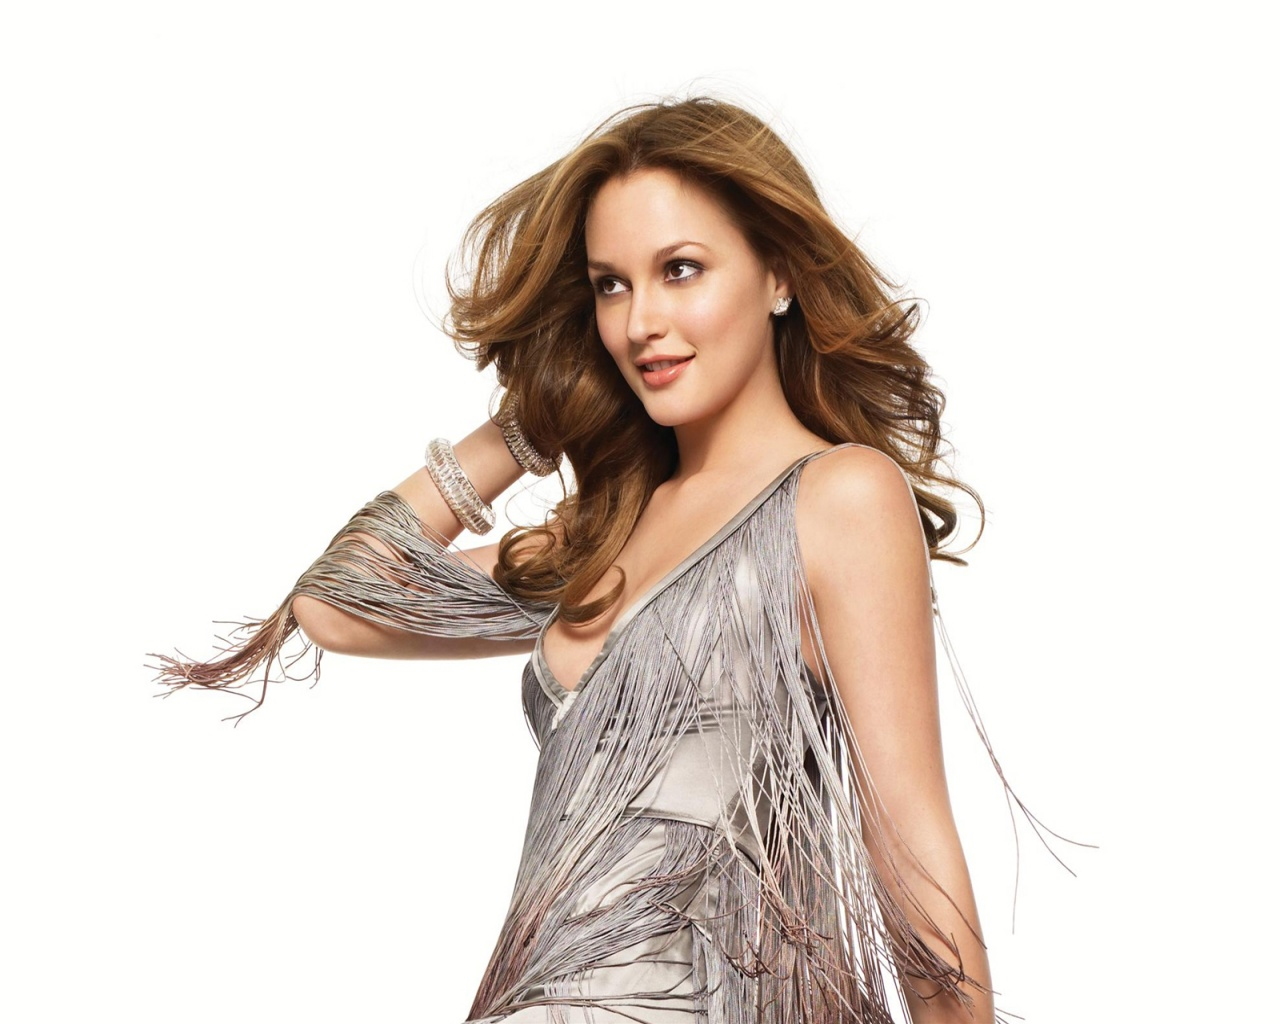 Gossip Girl Quote Wallpapers Leighton Meester Hot Wallpapers Fun 4 U Have A Full